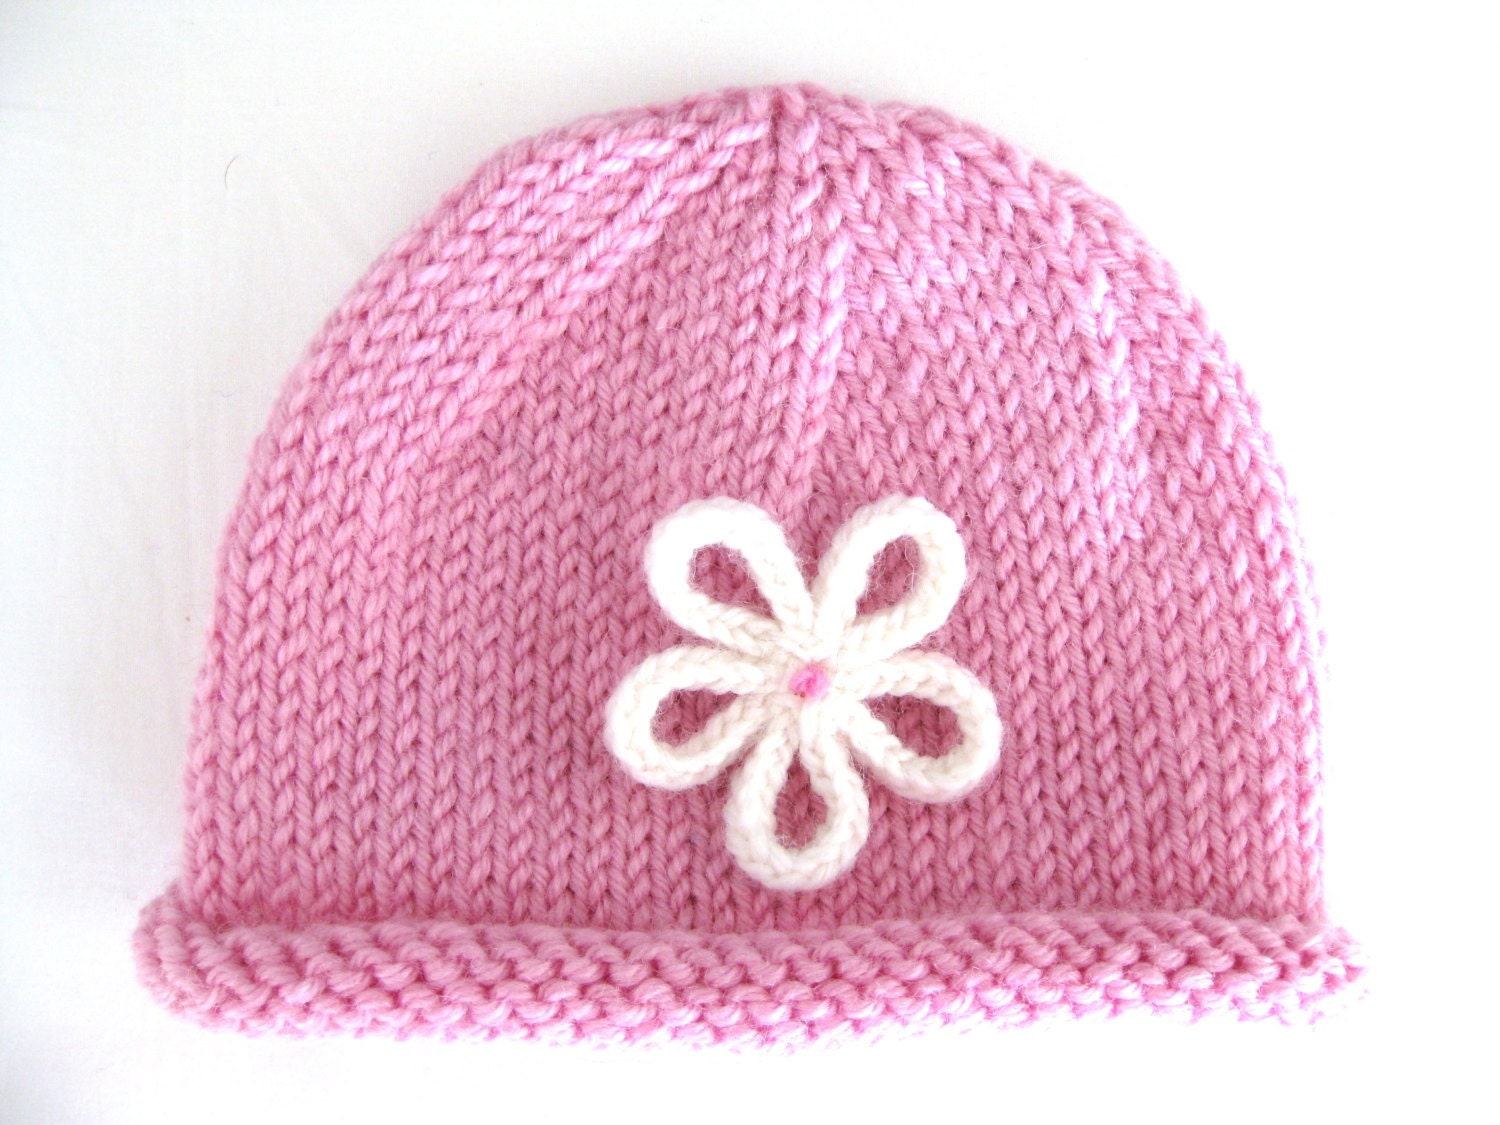 Knitting Pattern For Baby Hat With Brim : PATTERN Knitted PREEMIE and NEWBORN Rolled Brim Hat with